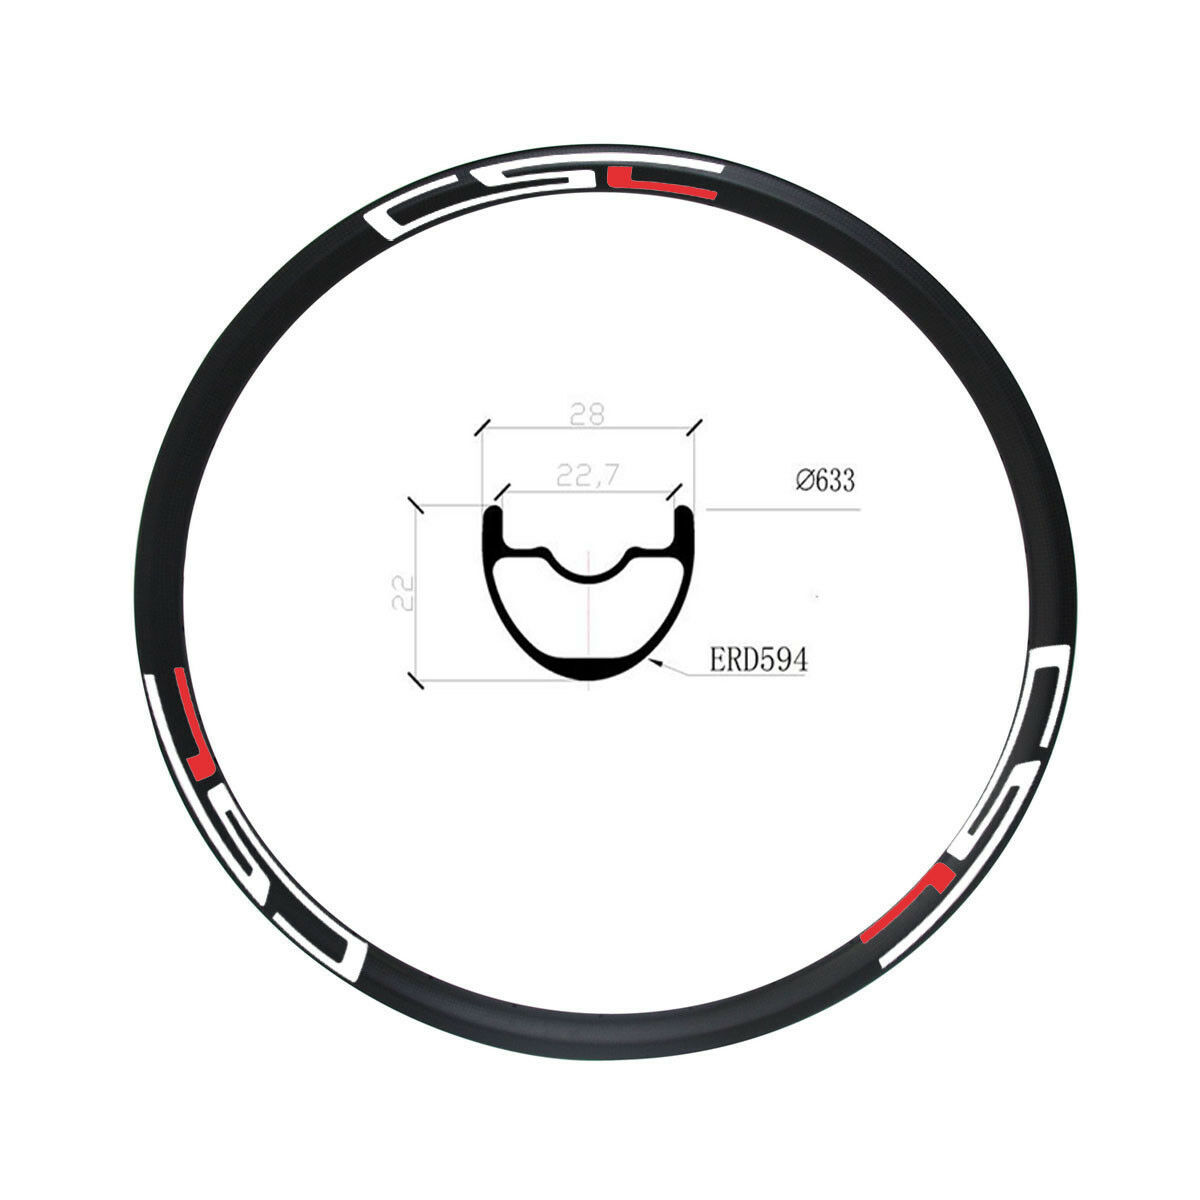 300g 29er MTB carbon Bicycle RIM XC 28mm tubuless Mountain Bike hookless rim